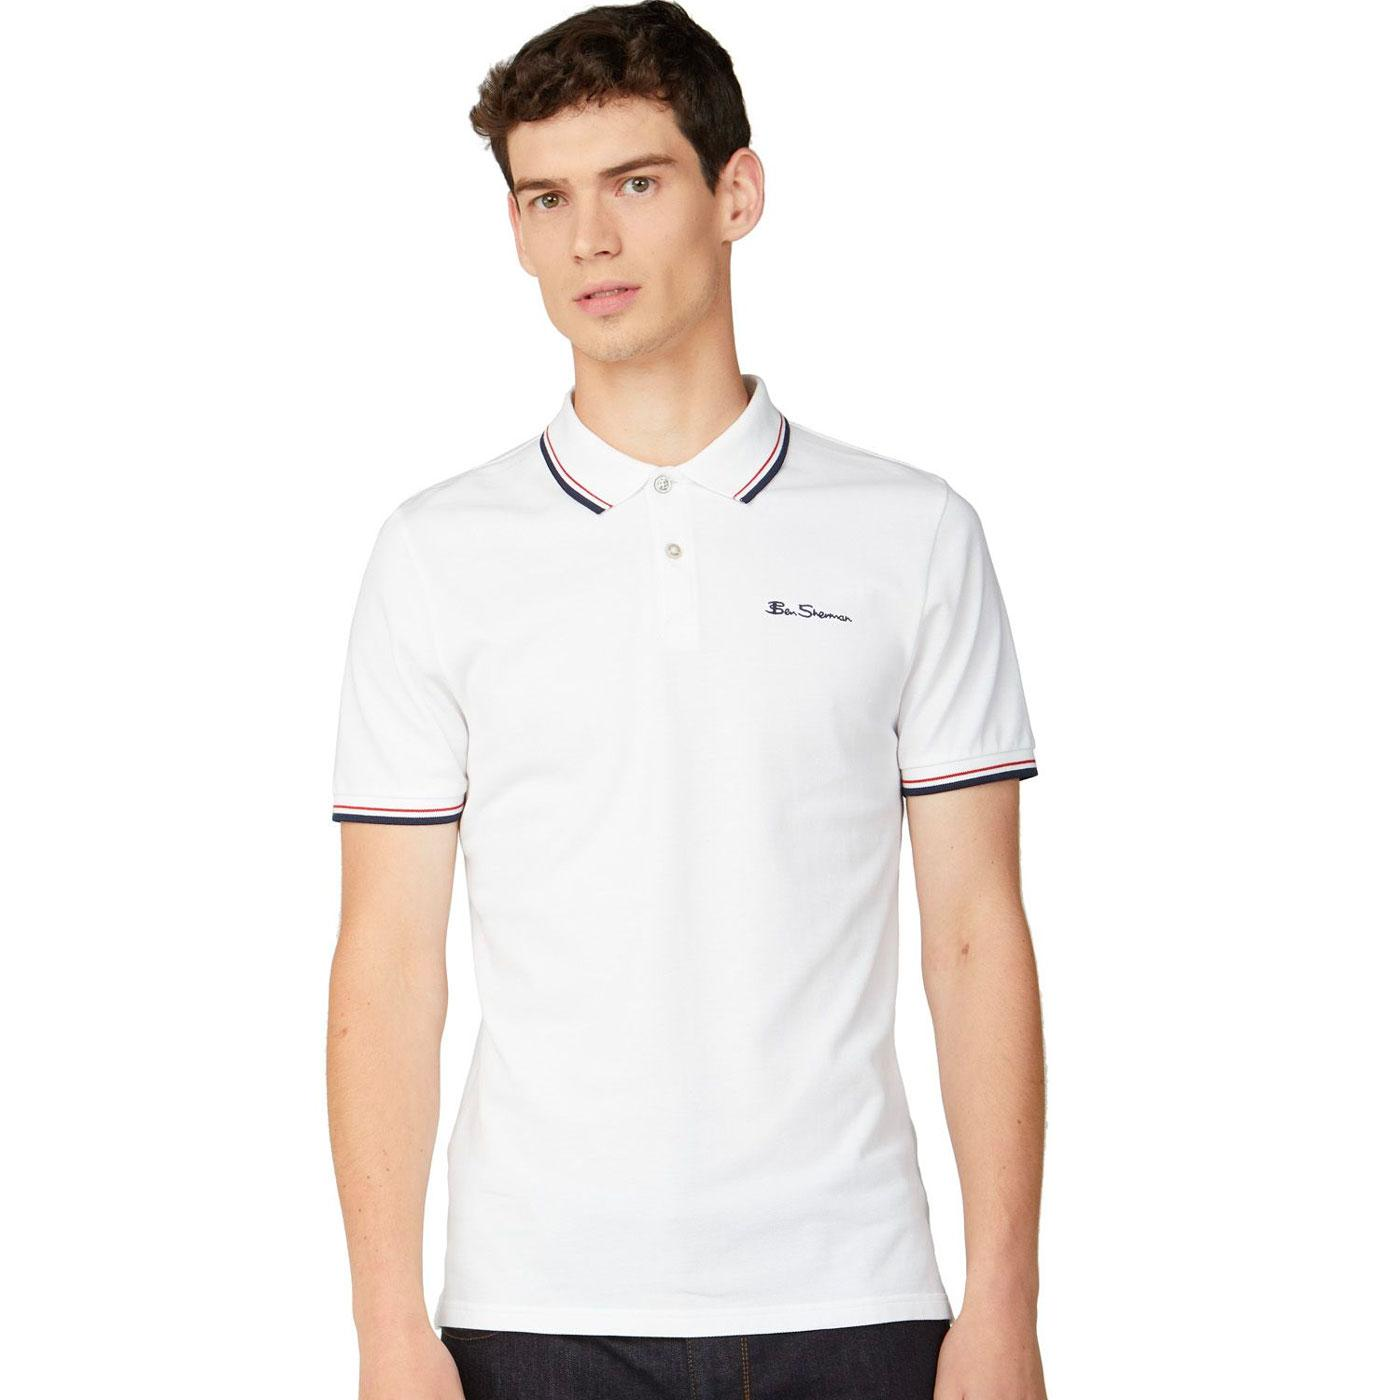 BEN SHERMAN Mod Tipped Signature Polo Top in White